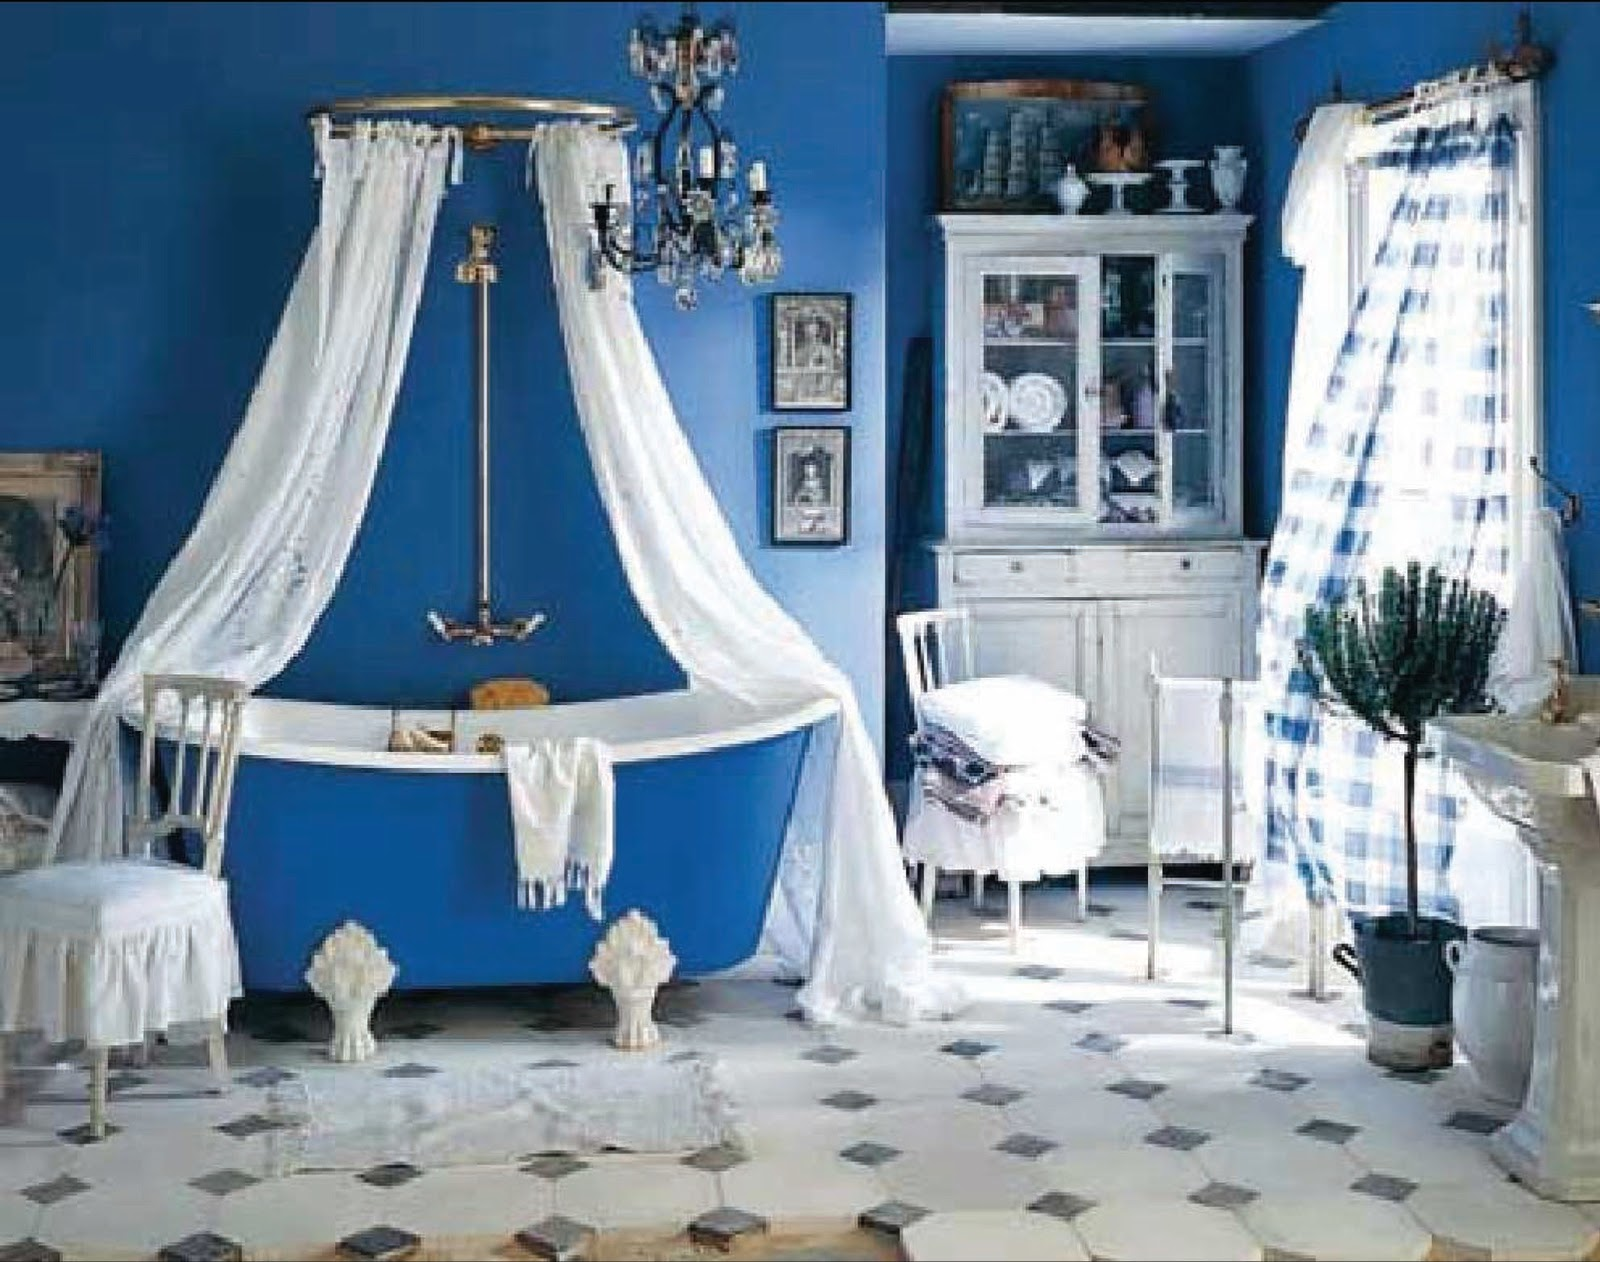 Blue Clawfoot Tub Matched With Blue Wall Plus Curtain And Chandelier For Bathroom Decor Ideas